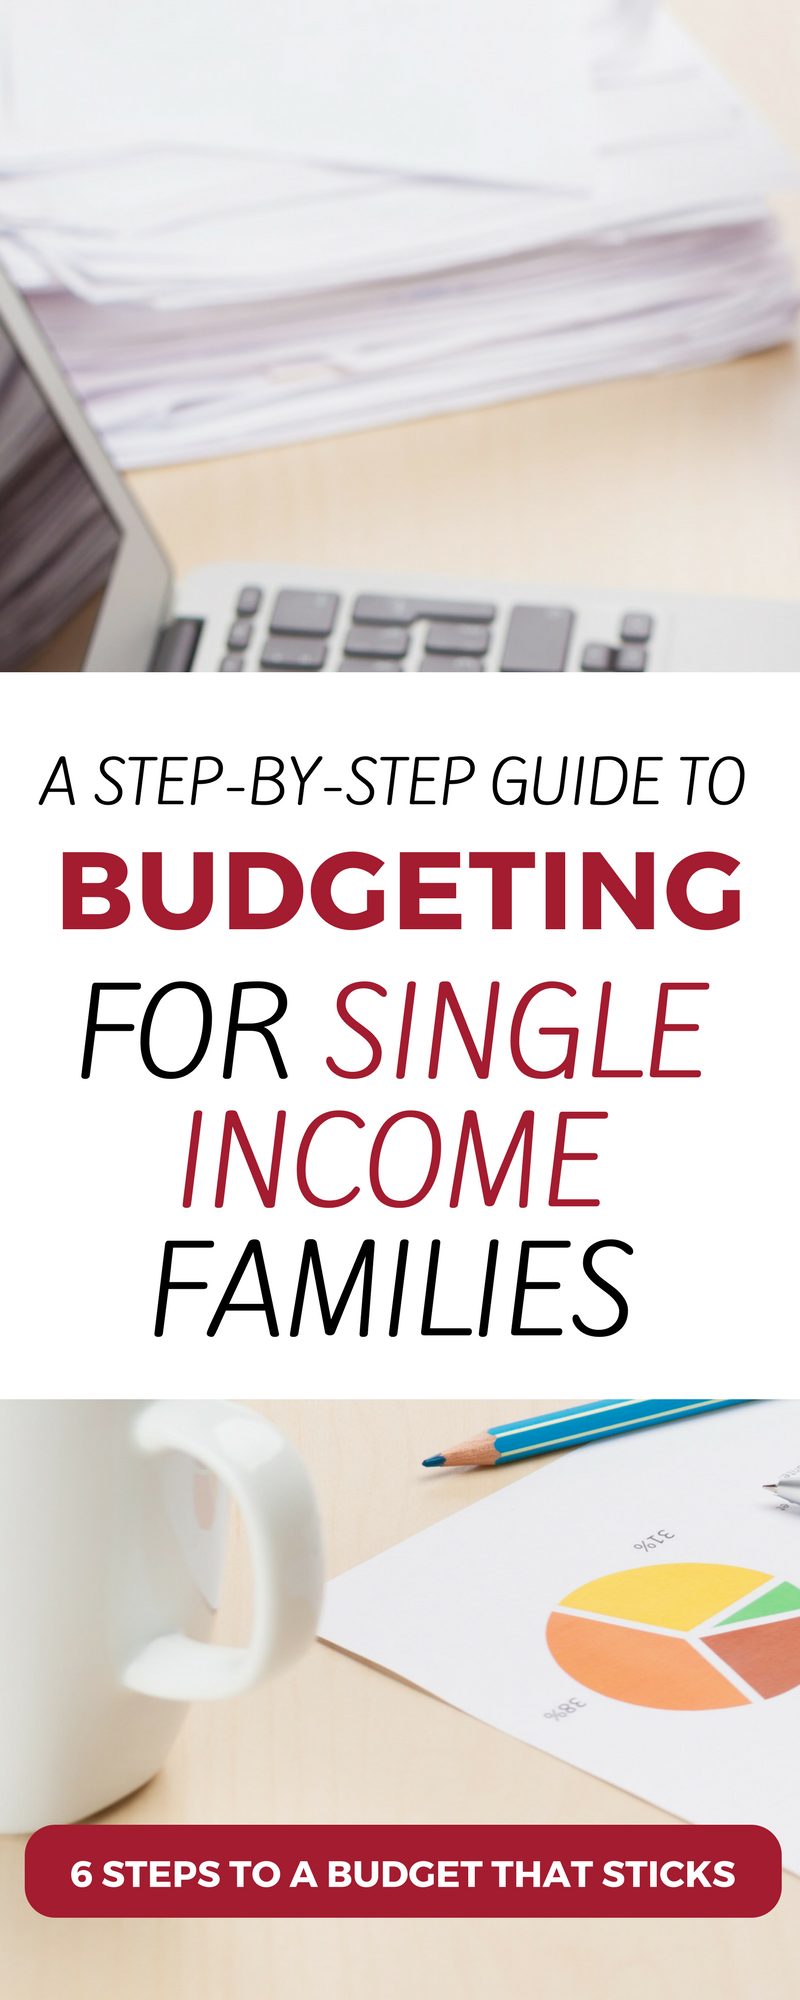 Discover the secrets to budgeting on one income. This step-by-step budgeting process for single income families can help your family live a meaningful and frugal life. budgeting for families | single income budget | single income family tips | single income budget personal finance | #budgeting #budget #money #familyfinance